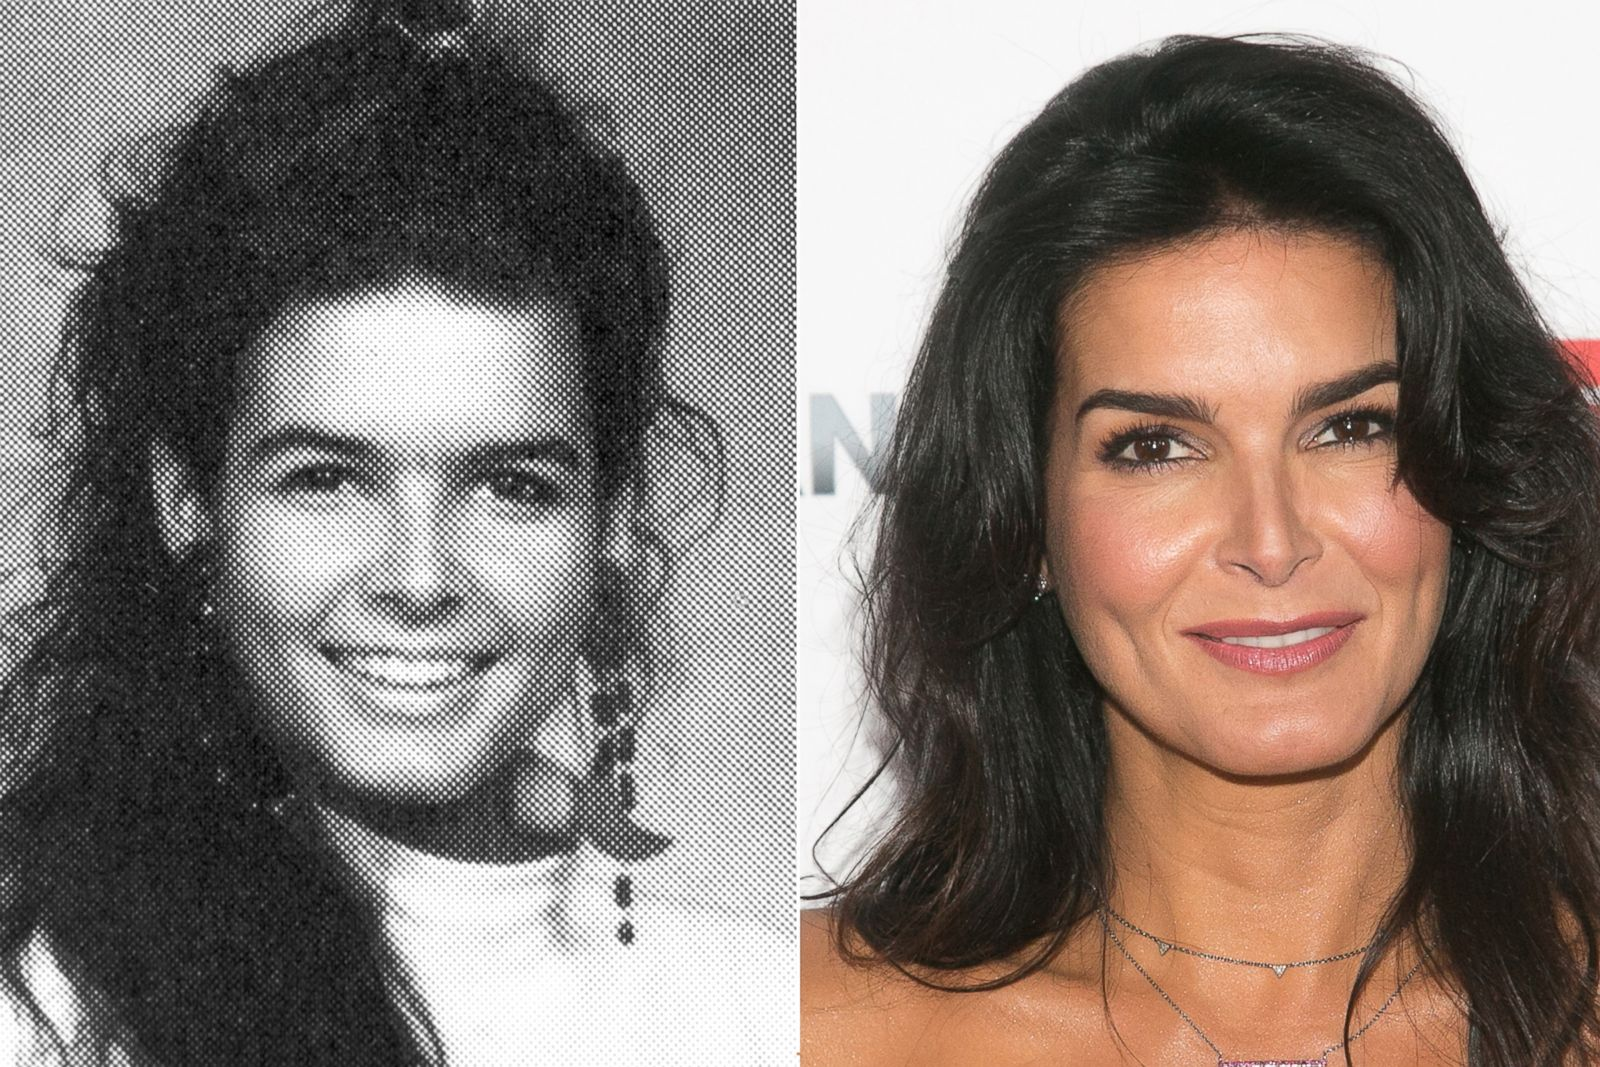 ' ' from the web at 'https://s.abcnews.com/images/Entertainment/angie-harmon-ht-gty-ml-170807_3x2_1600.jpg'